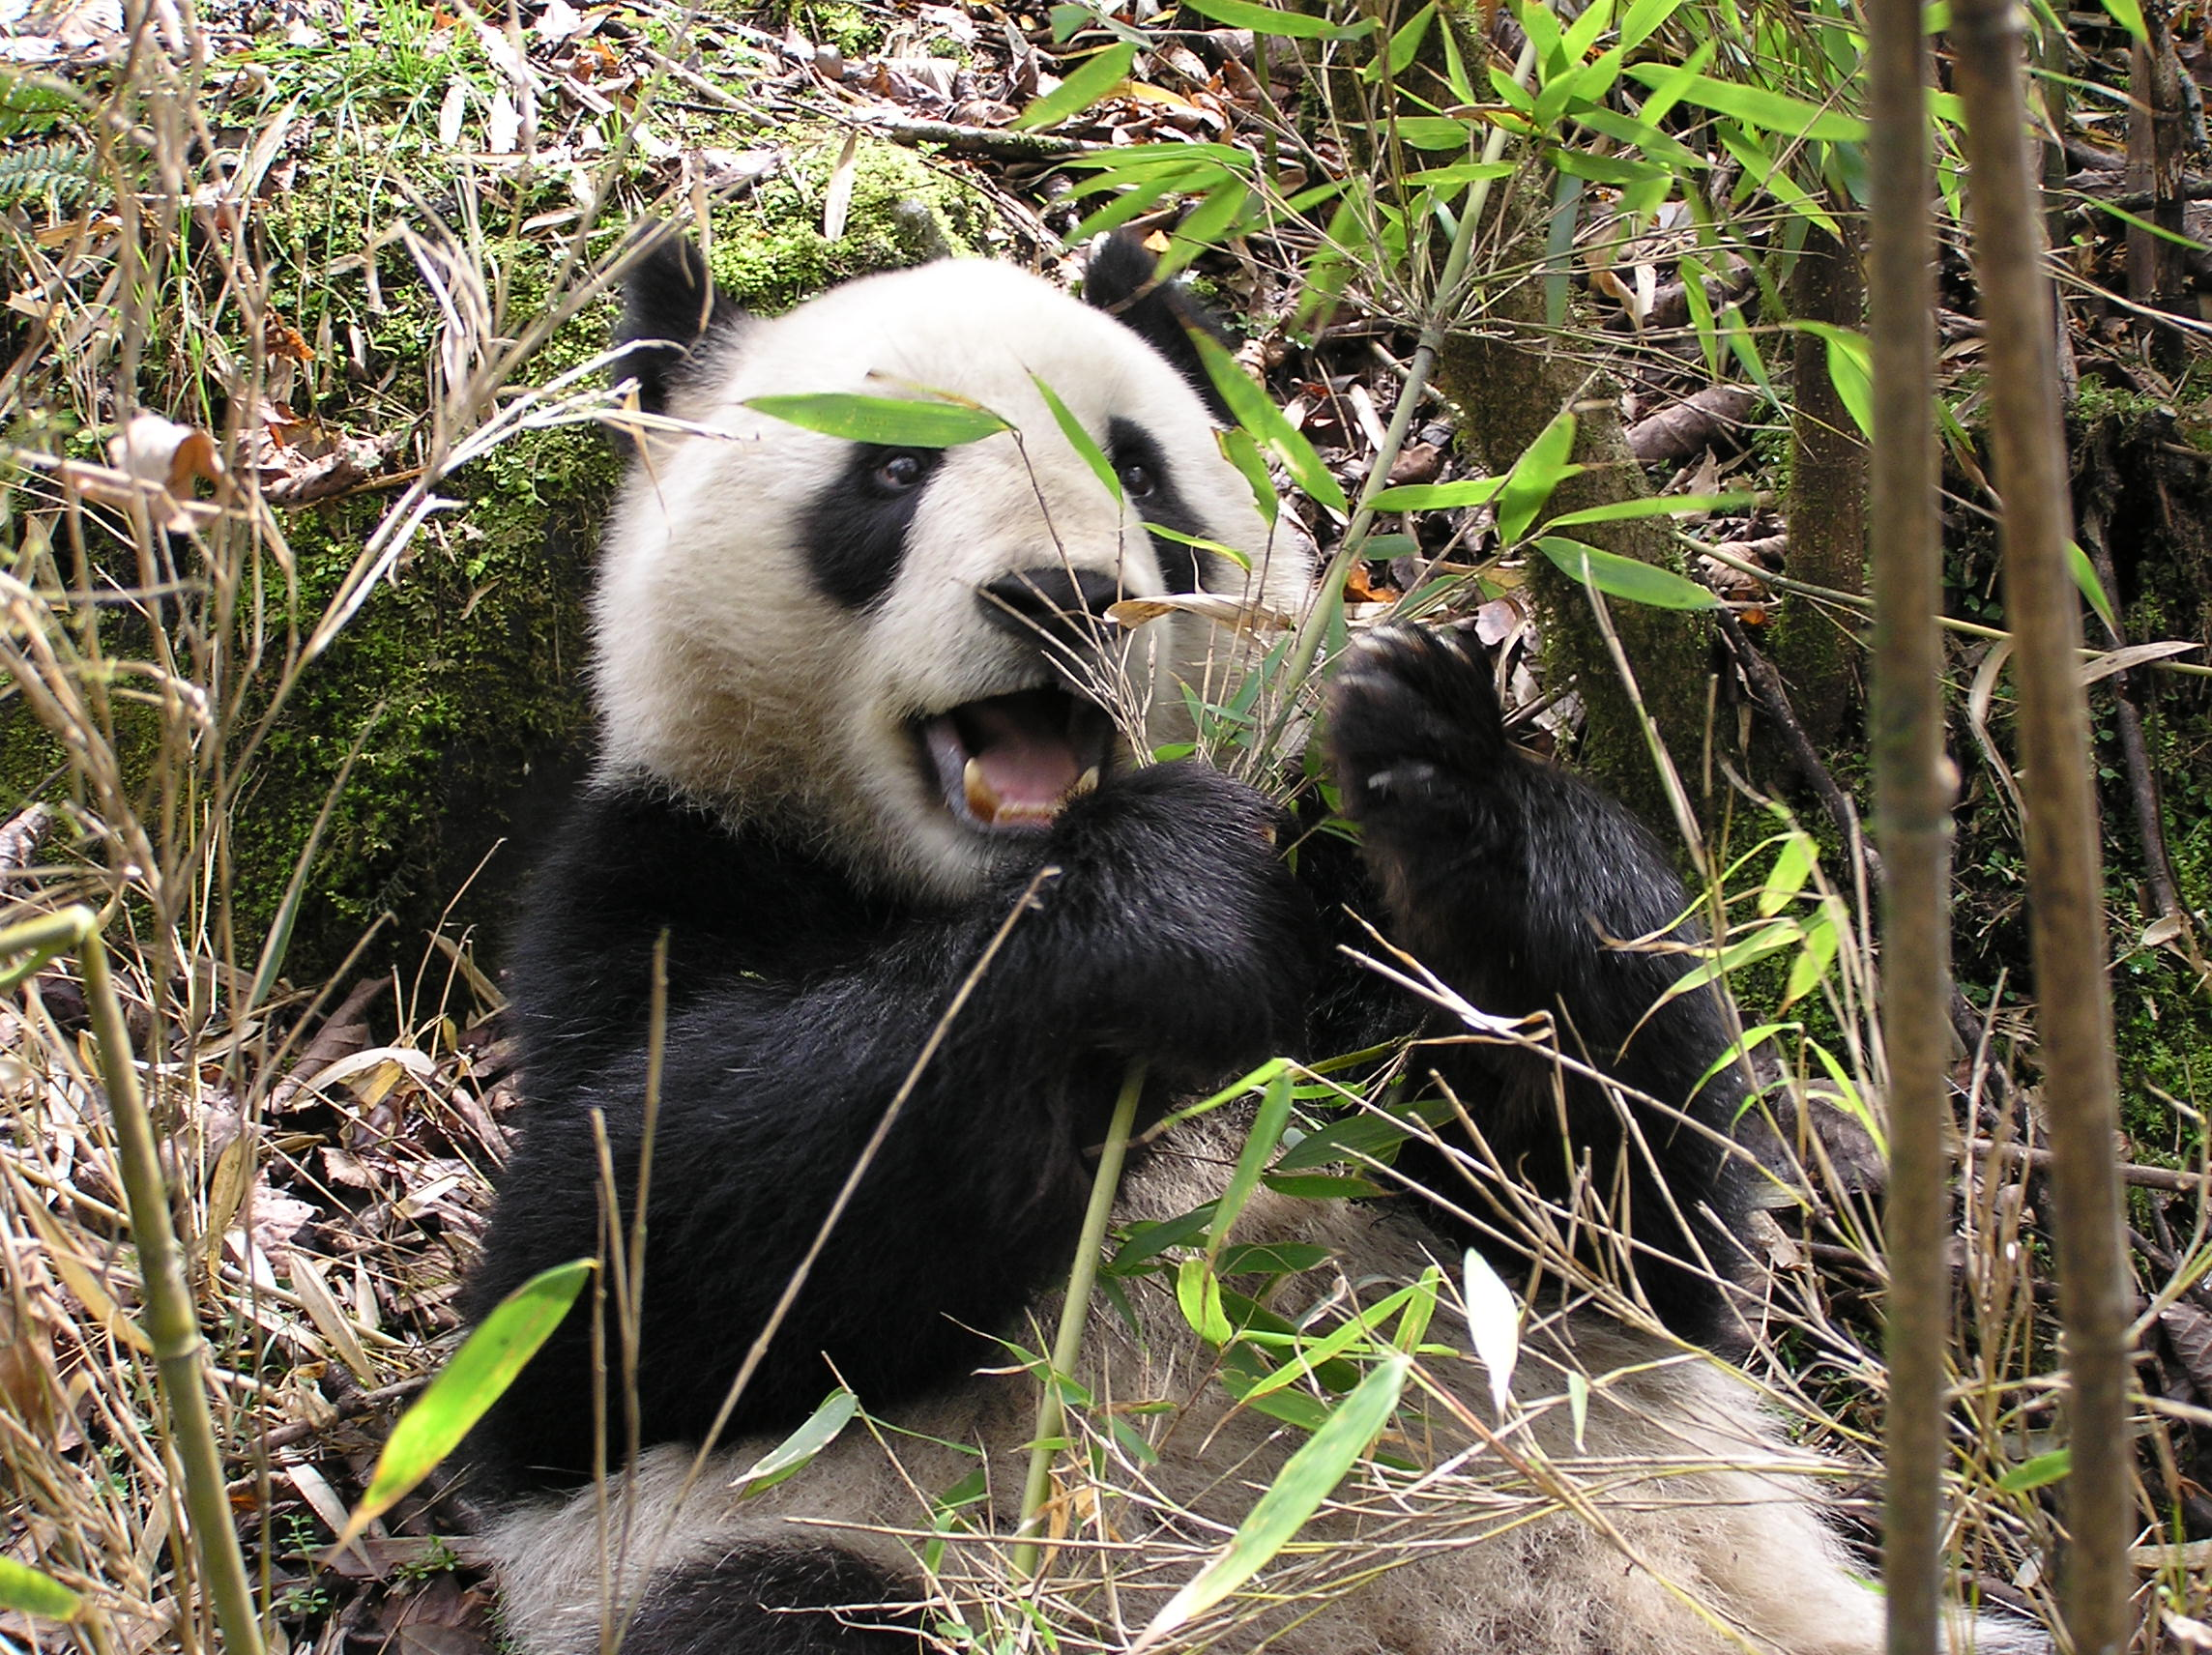 Giant panda 'Xiangxiang' eating umbrella bamboo (p